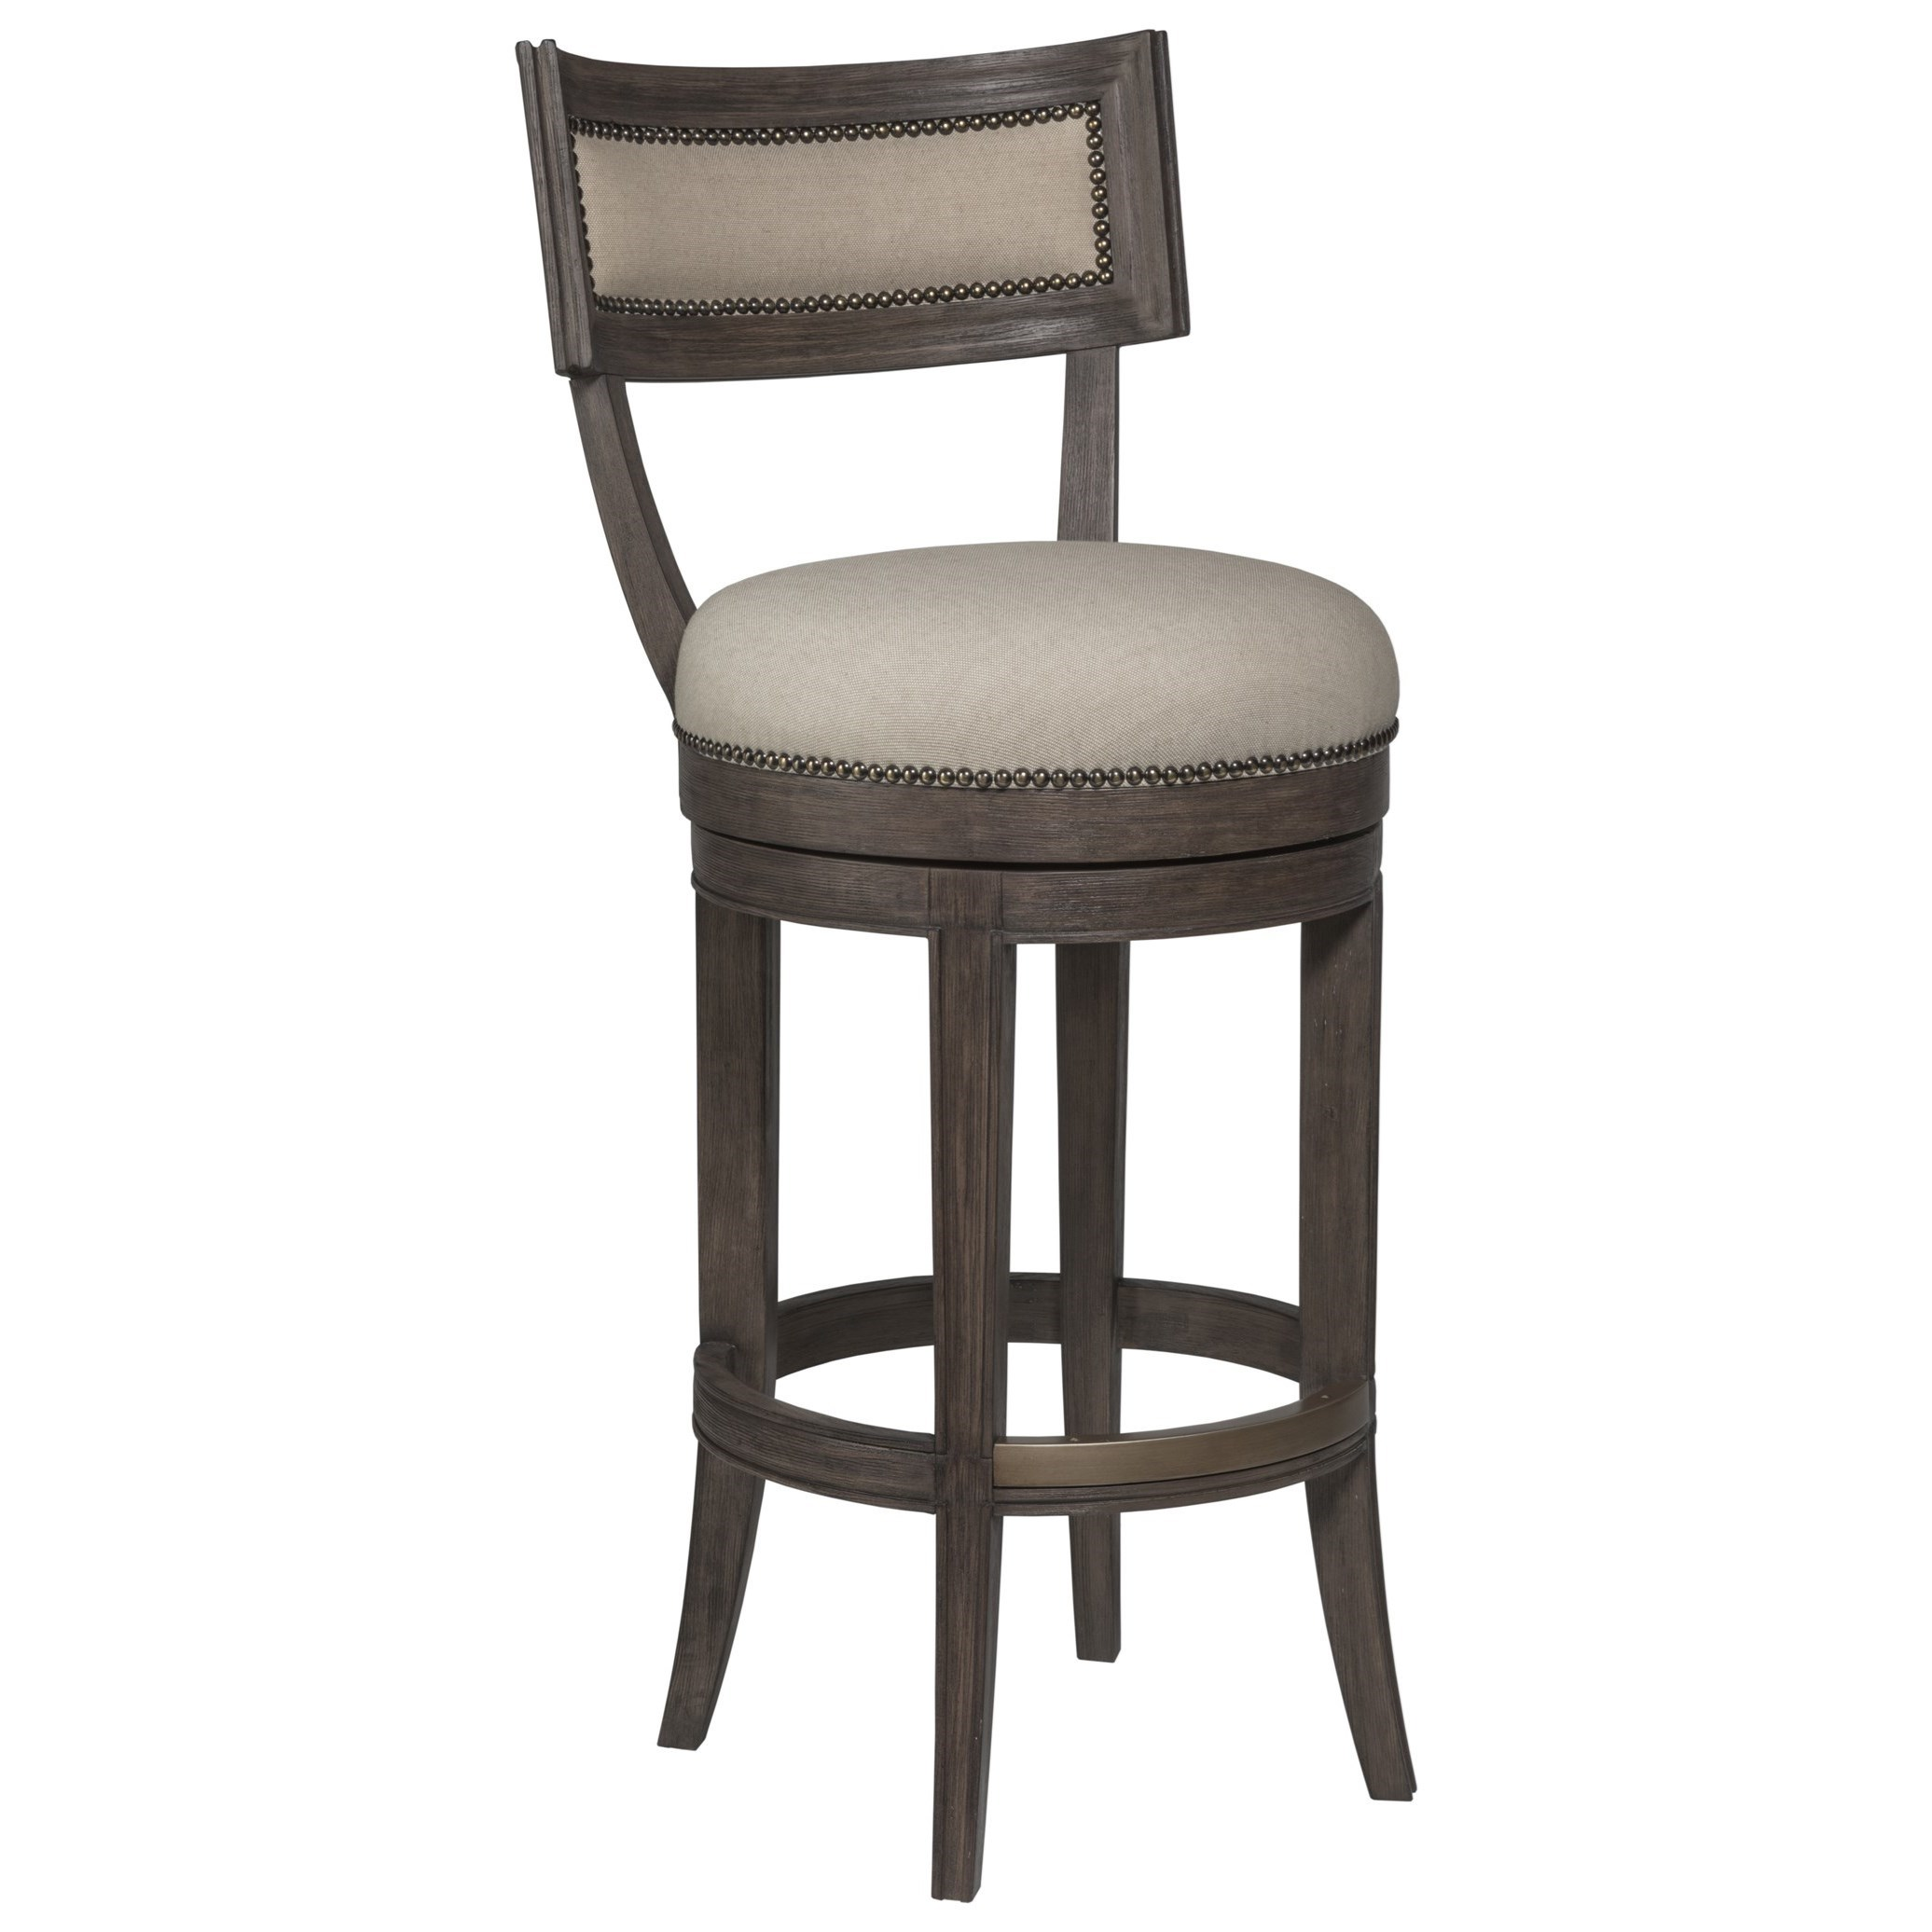 Cohesion Apertif Swivel Barstool by Artistica at C. S. Wo & Sons Hawaii